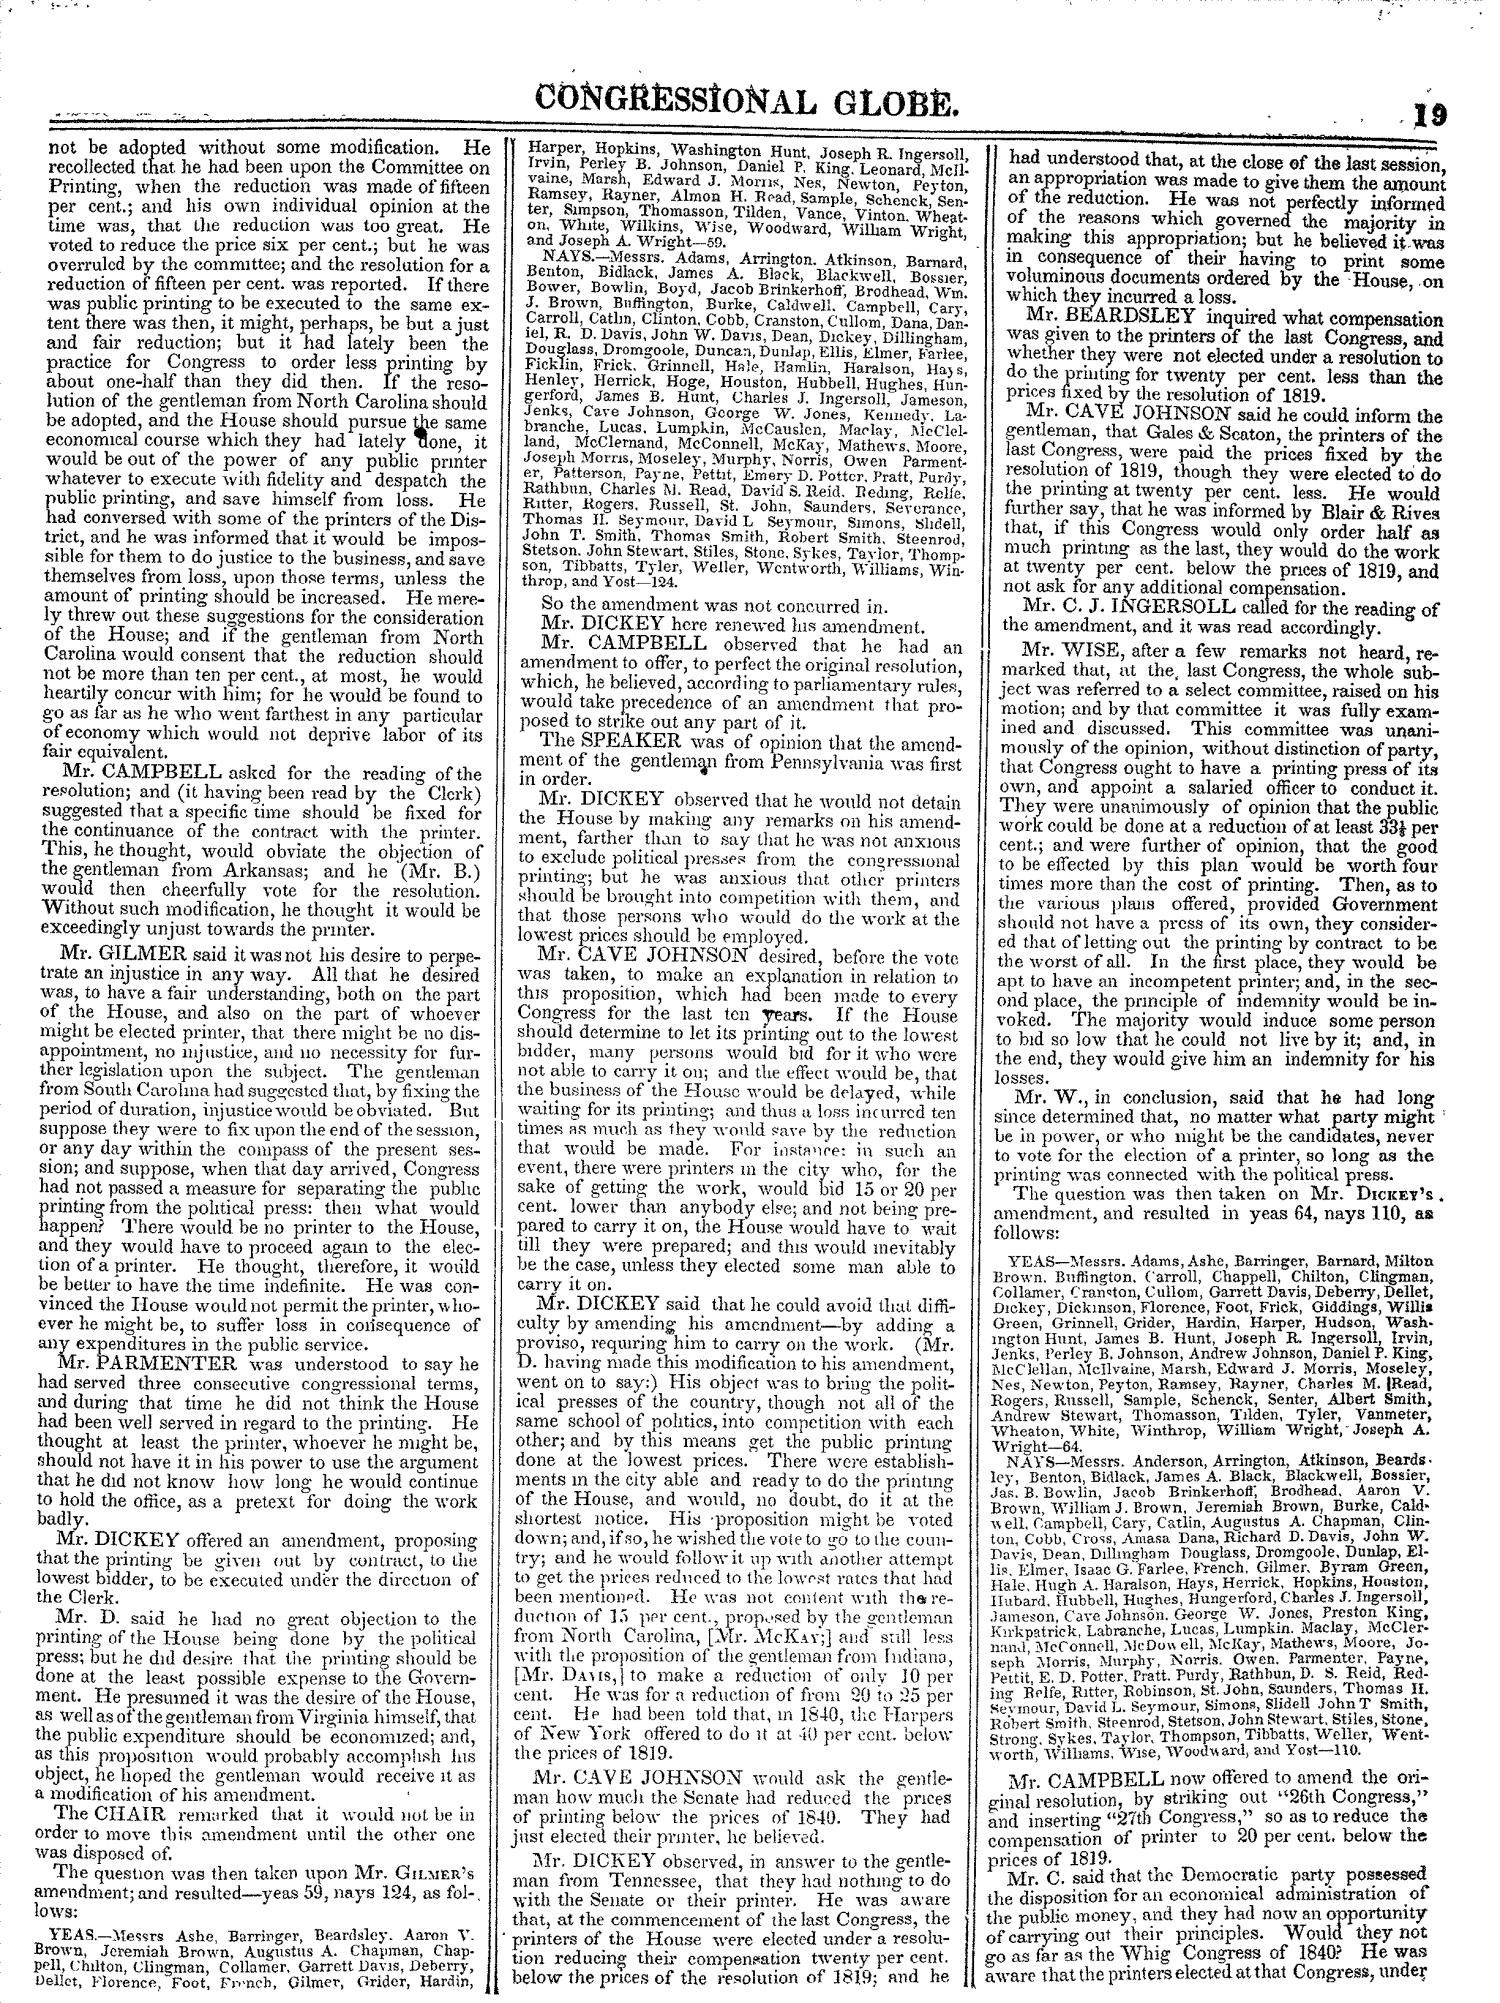 The Congressional Globe, Volume 13, Part 1: Twenty-Eighth Congress, First Session                                                                                                      19